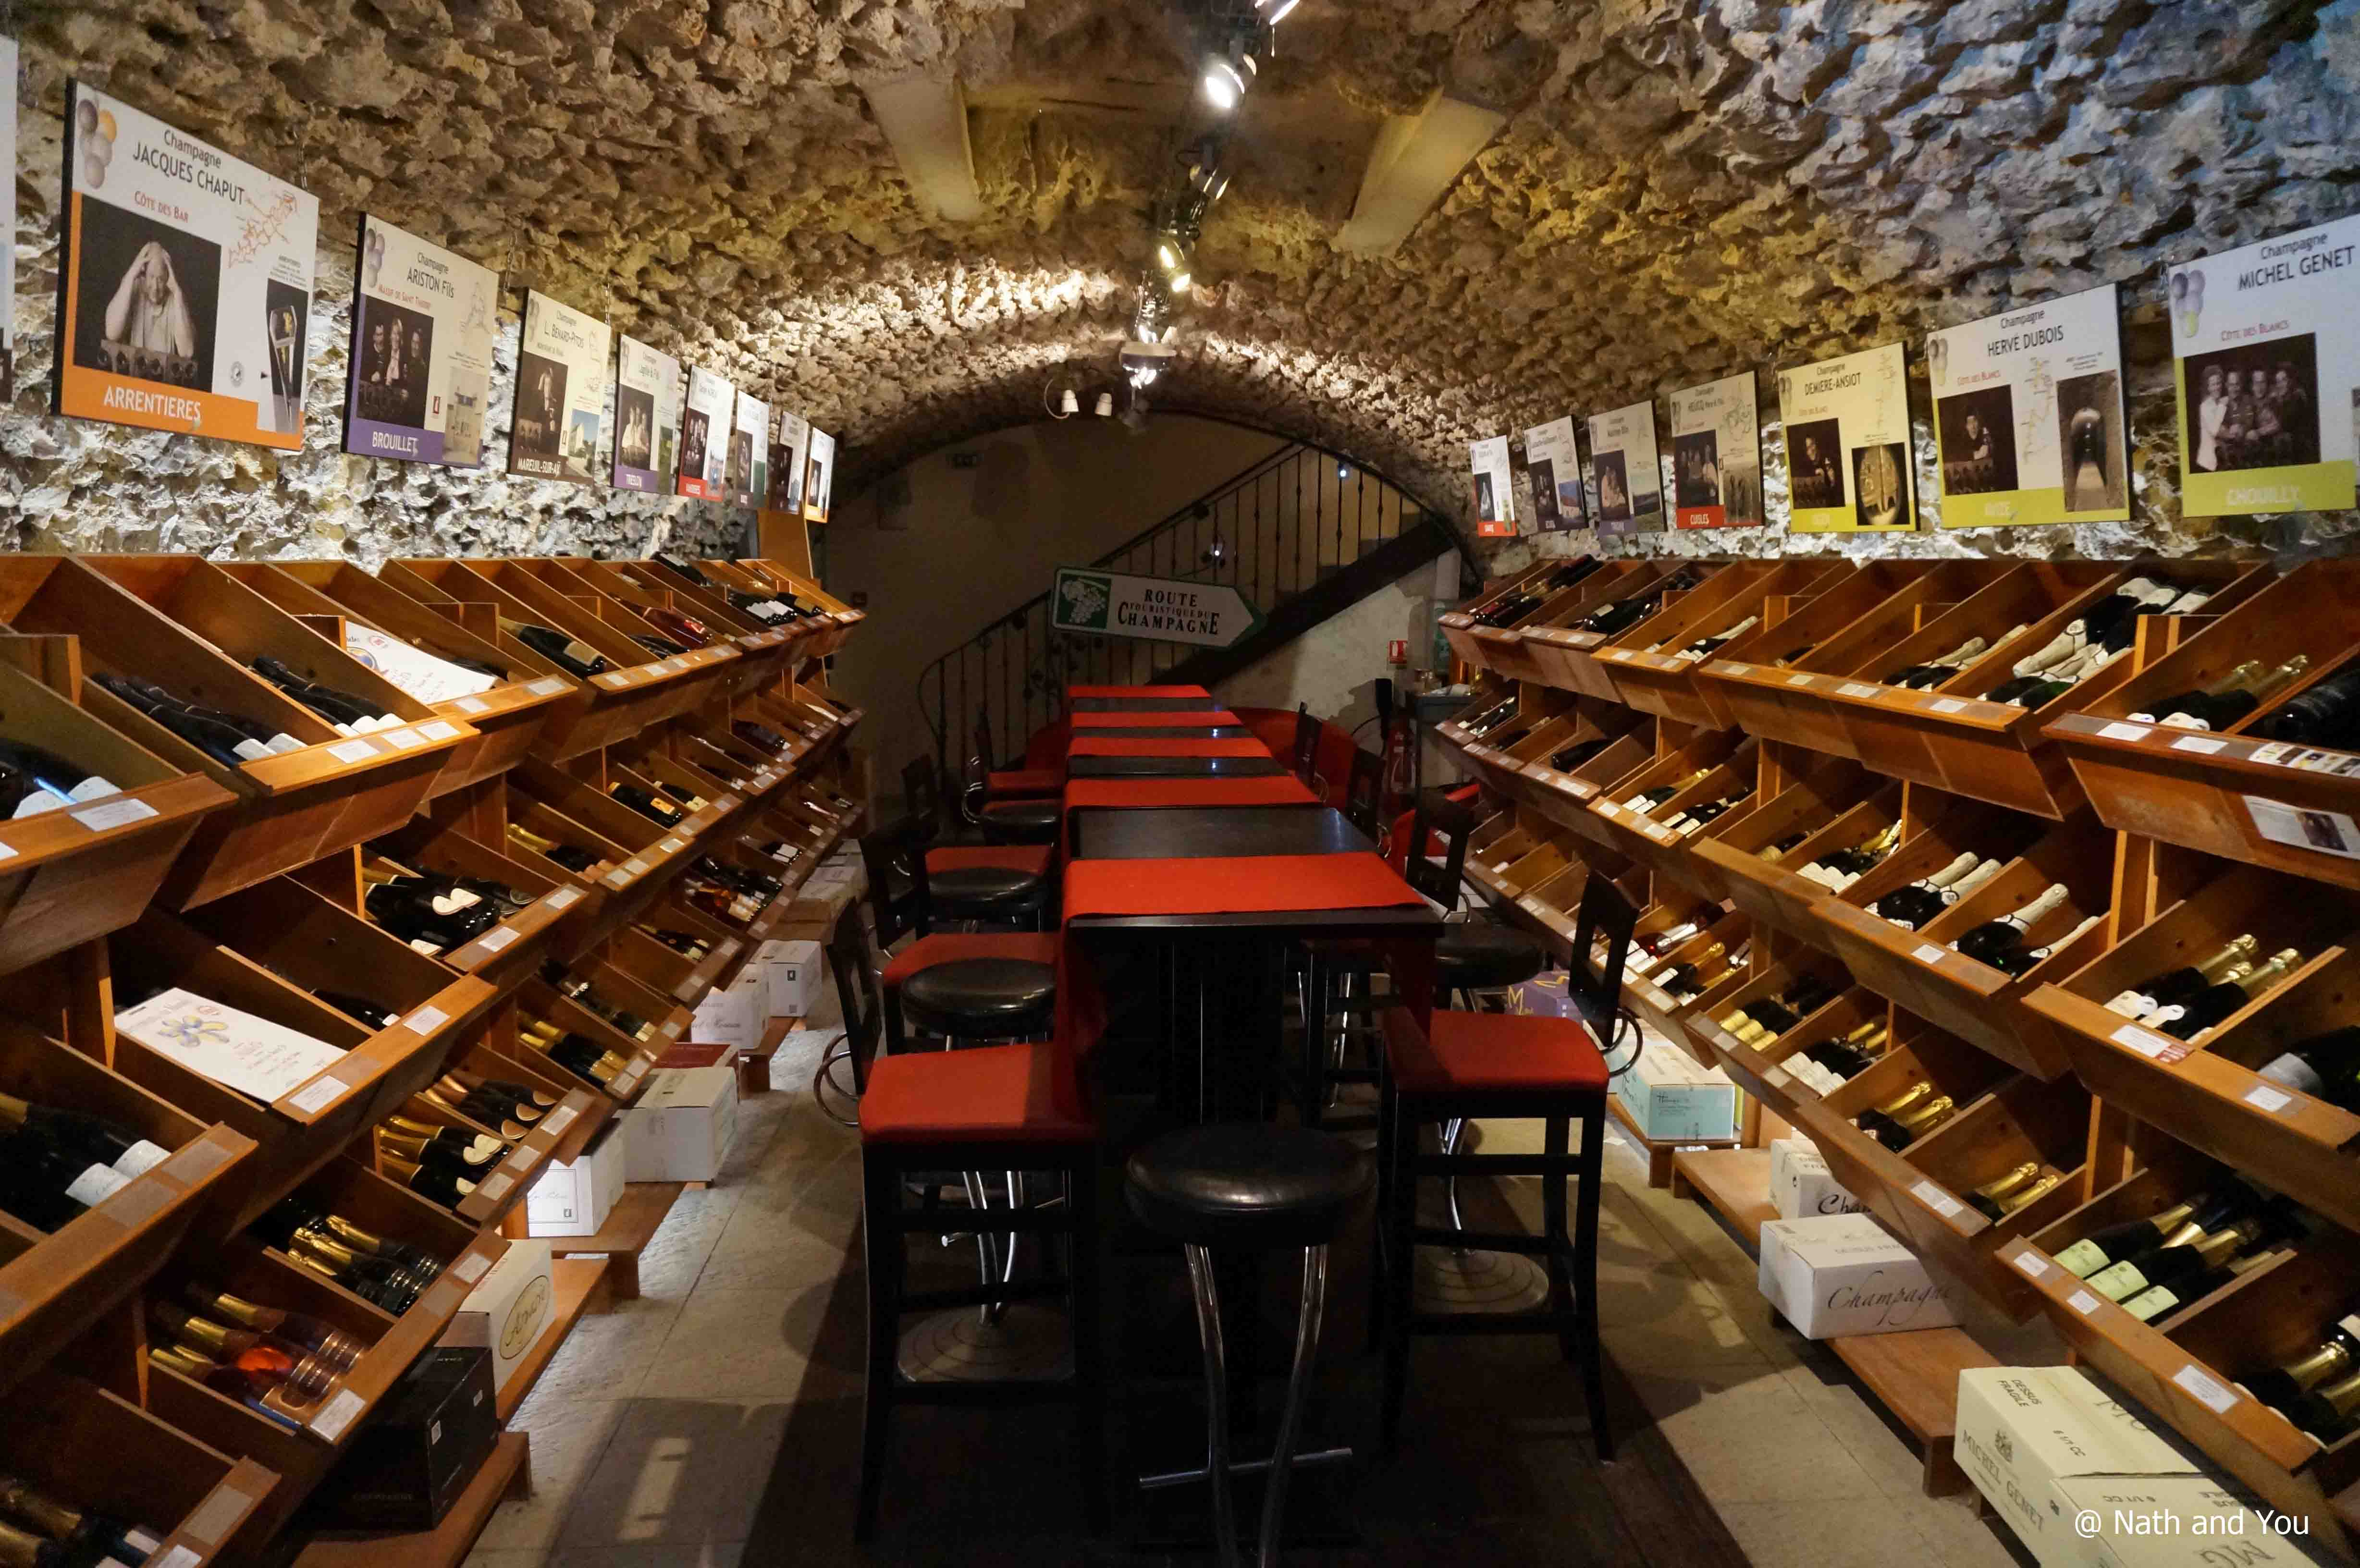 caveau-c-comme-champagne-bar-epernay-nath-and-you